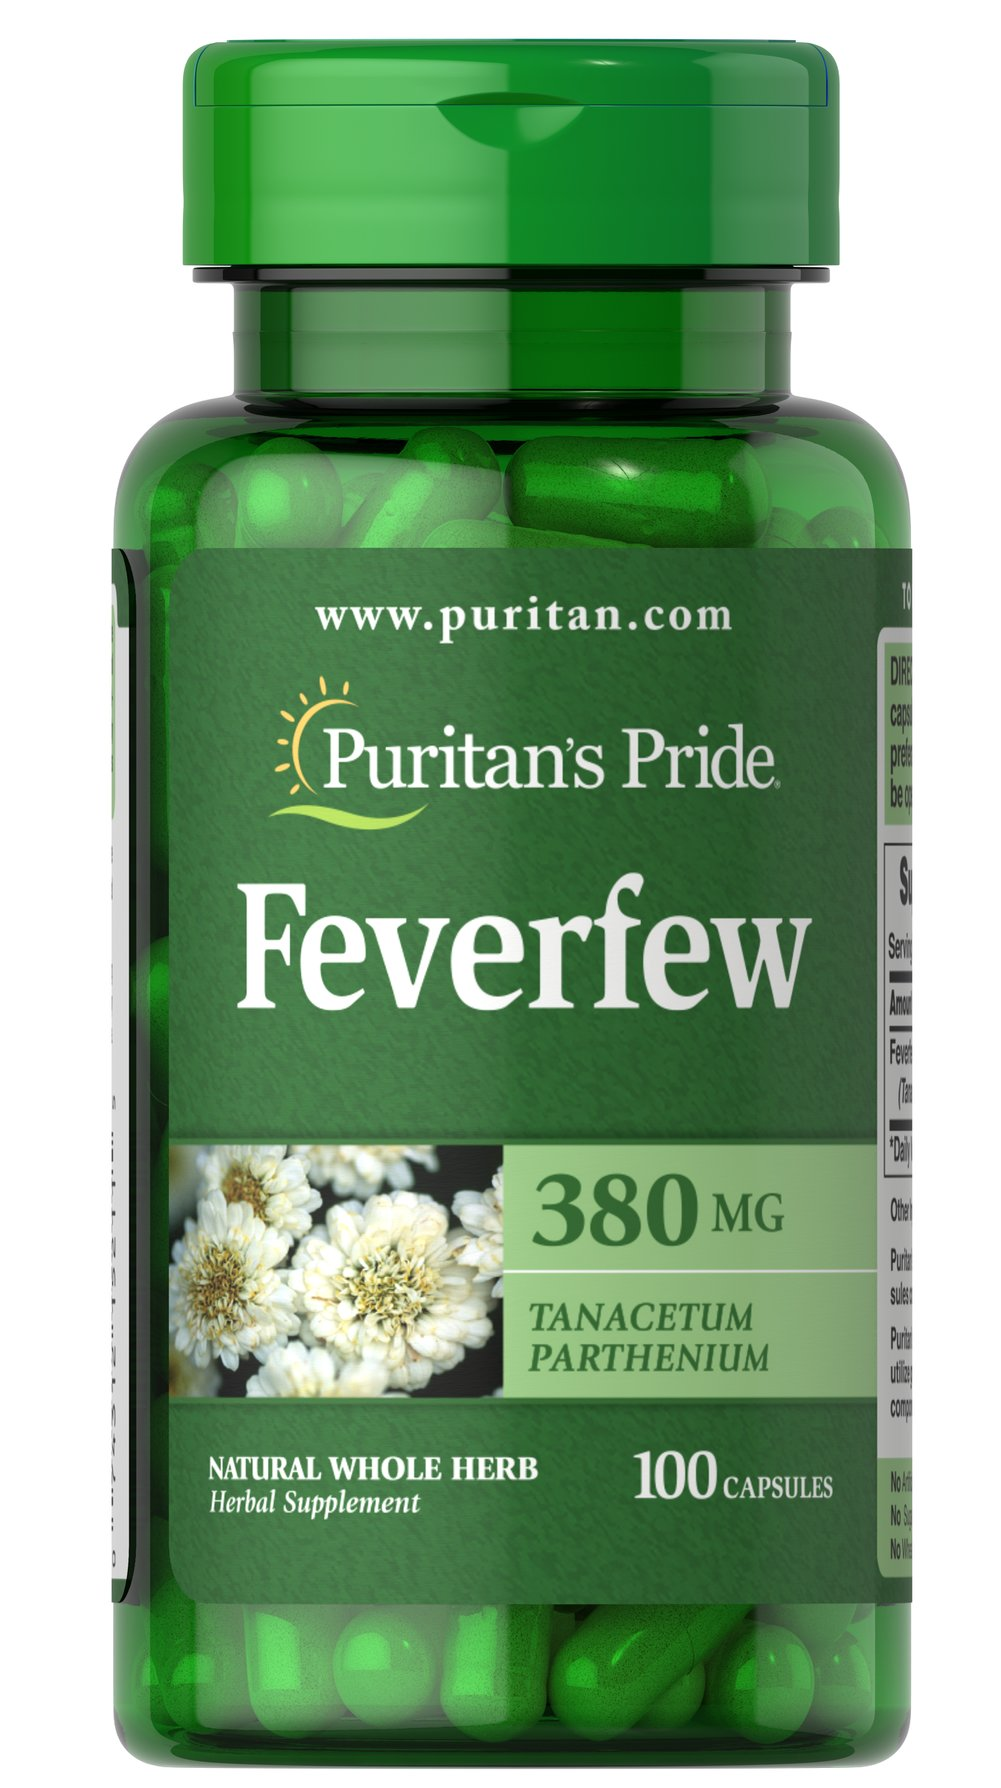 Feverfew 380 mg <p>Feverfew (Tanacetum parthenium) is traditionally used by individuals with hectic lifestyles.**<br /><br />Puritan's Pride's preservative-free gelatin capsules contain pure milled herb powder.<br /><br />Puritan's Pride's Natural Whole Herb products utilize ground plant parts to provide the natural components found in nature.</p><p></p> 100 Capsules 380 mg $8.99